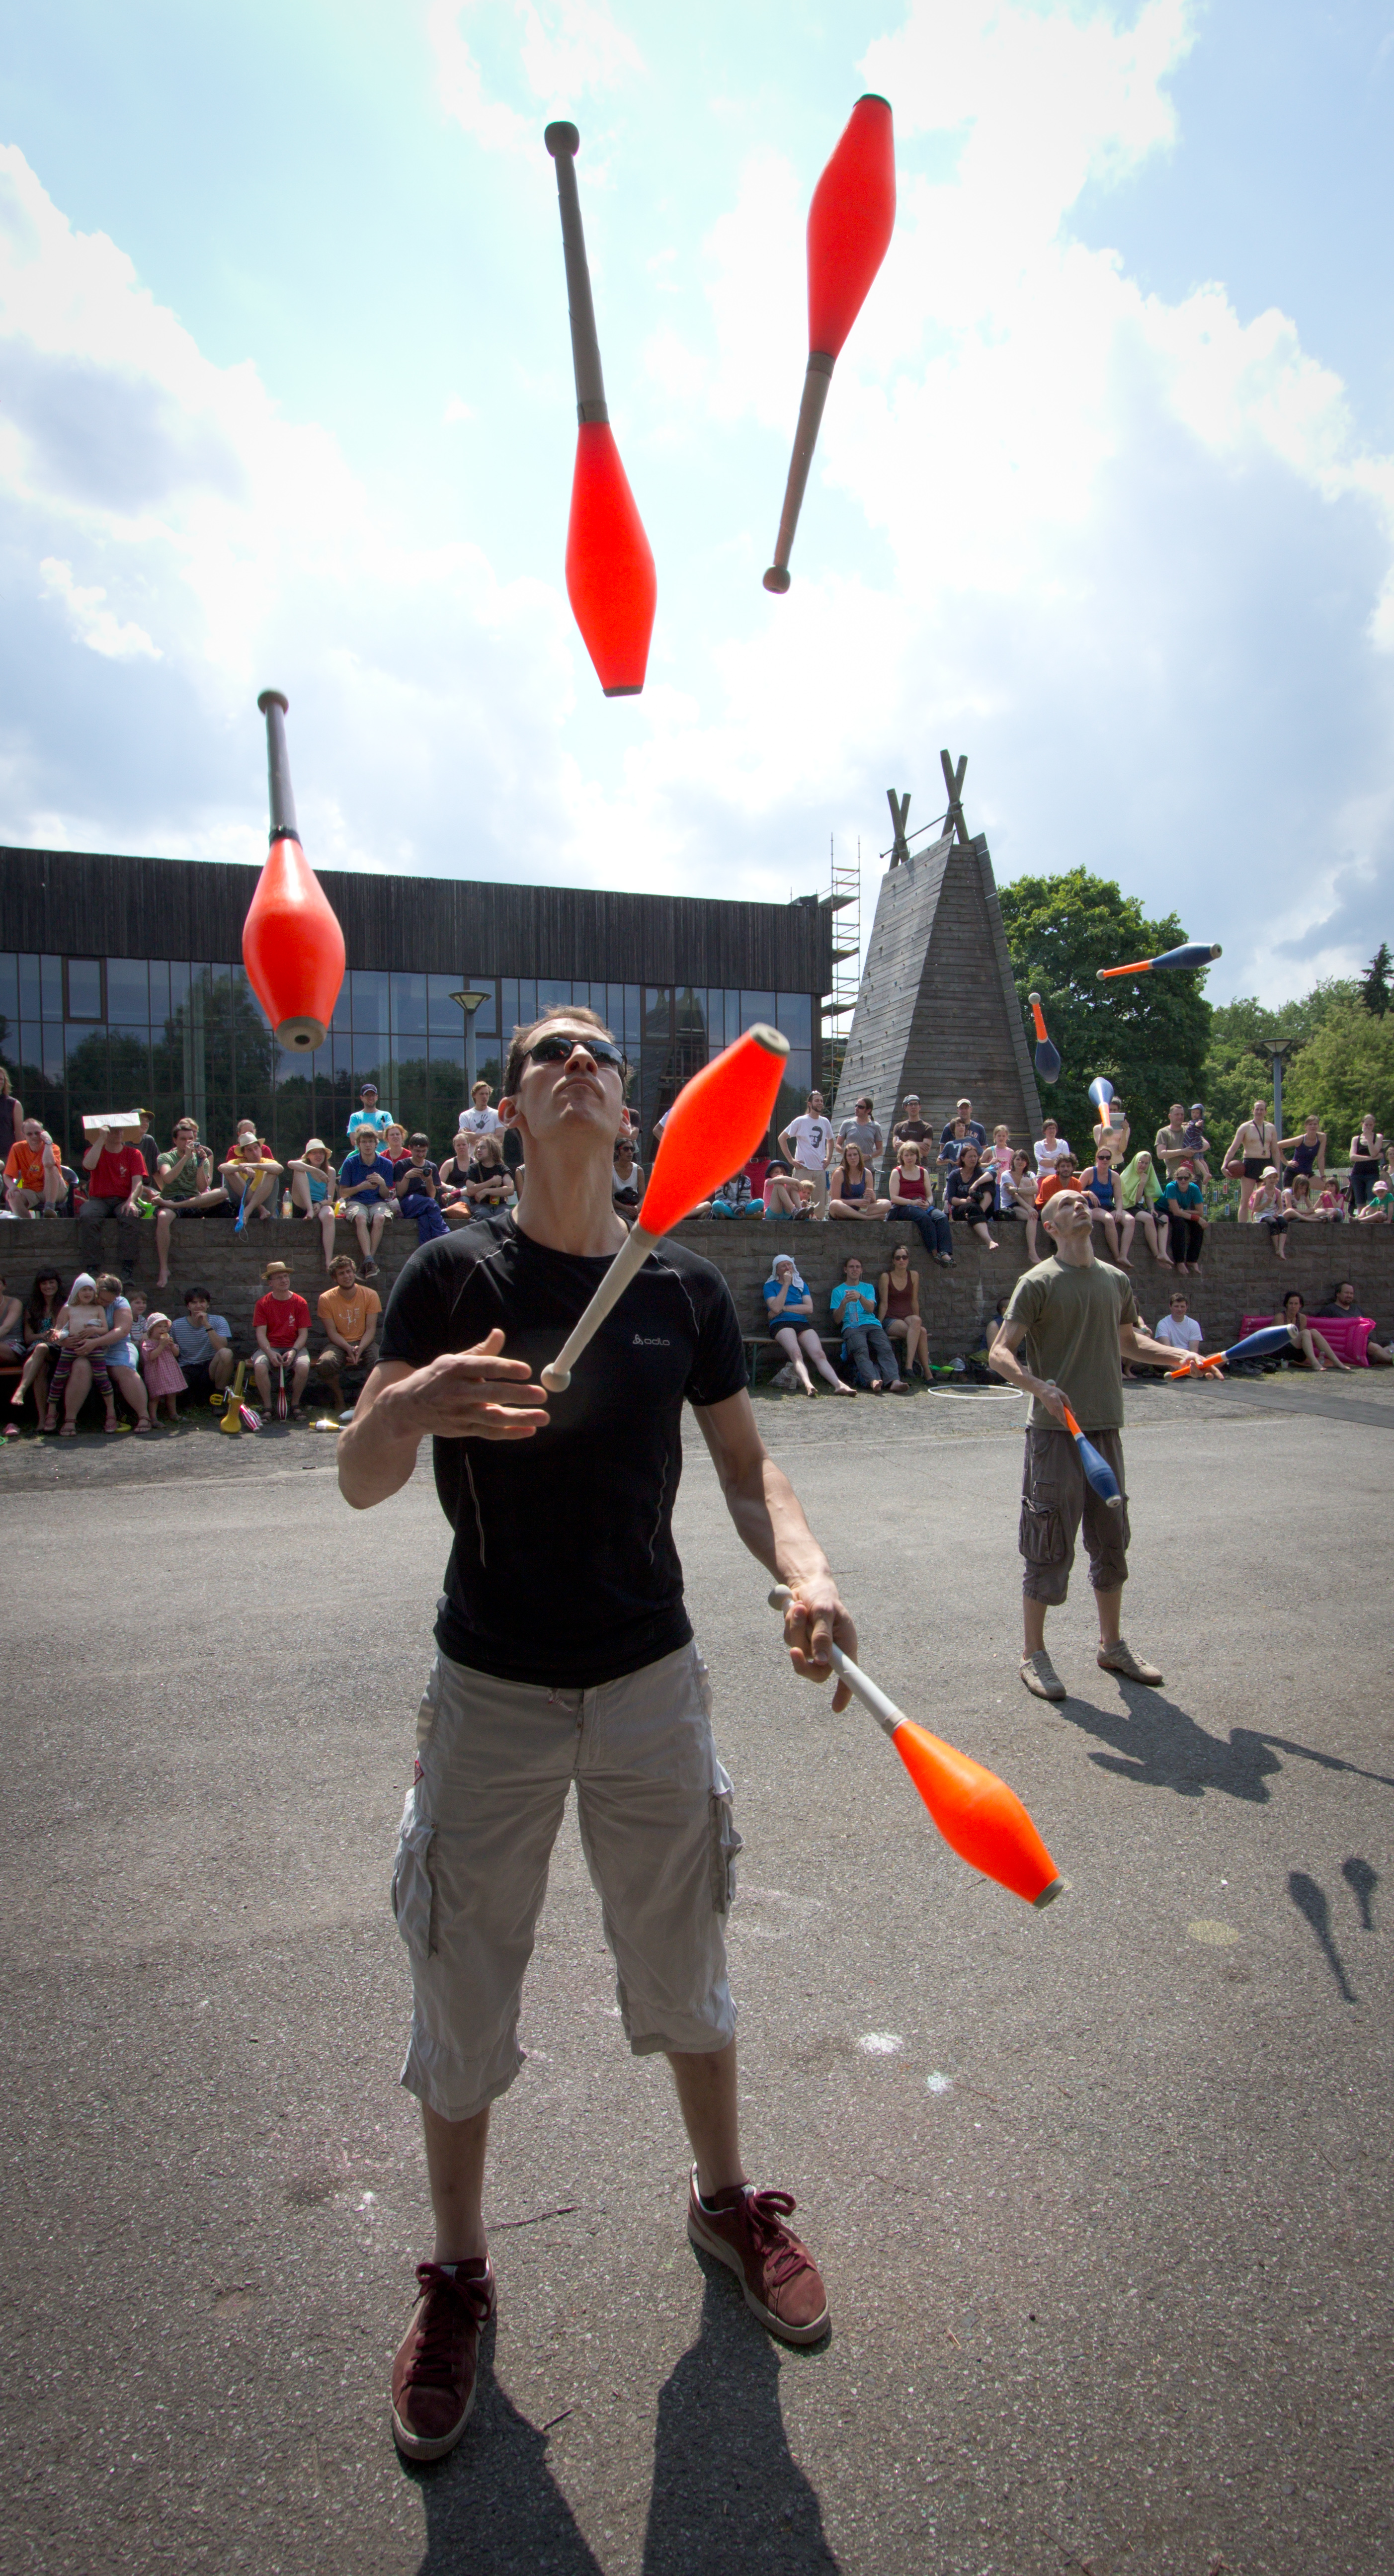 Berlin Juggling Convention 2013: The Juggling Games.